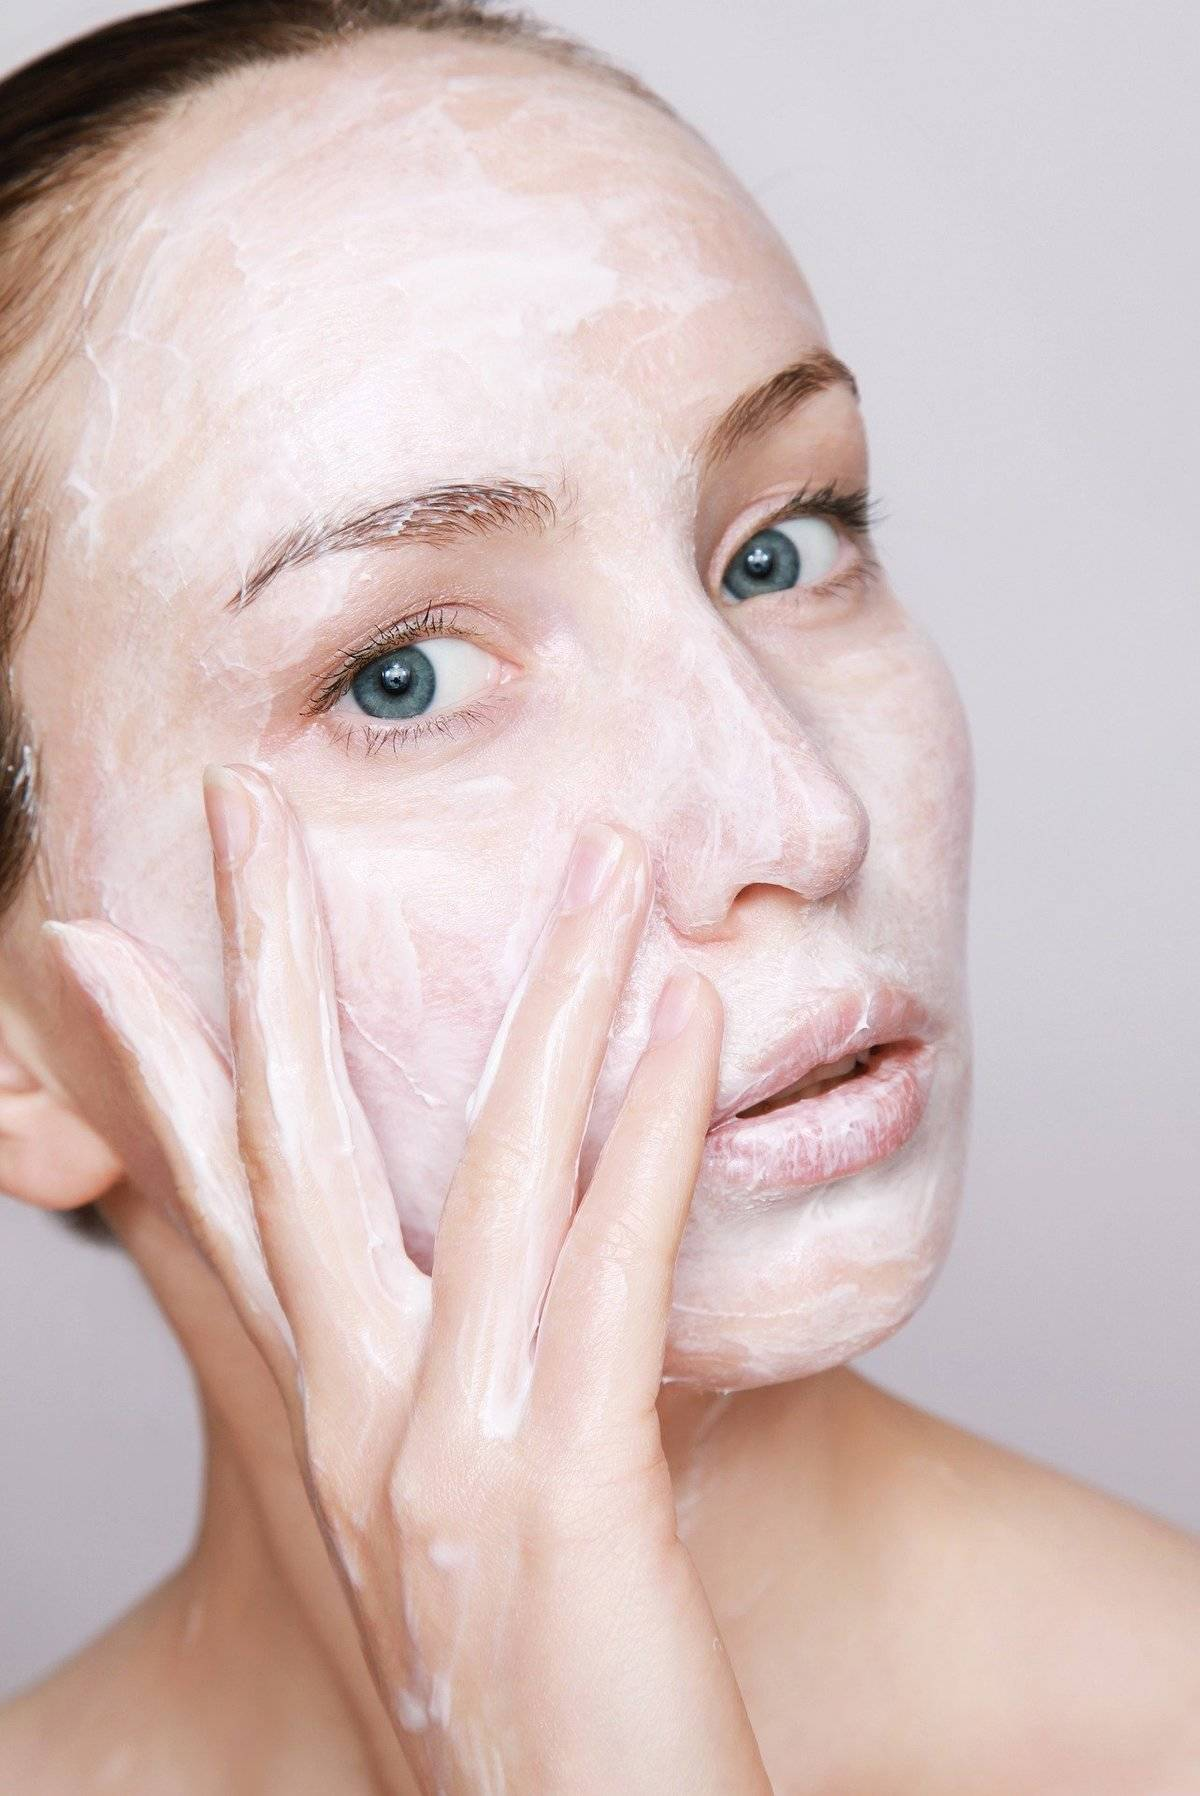 A woman has lotion all over her face.